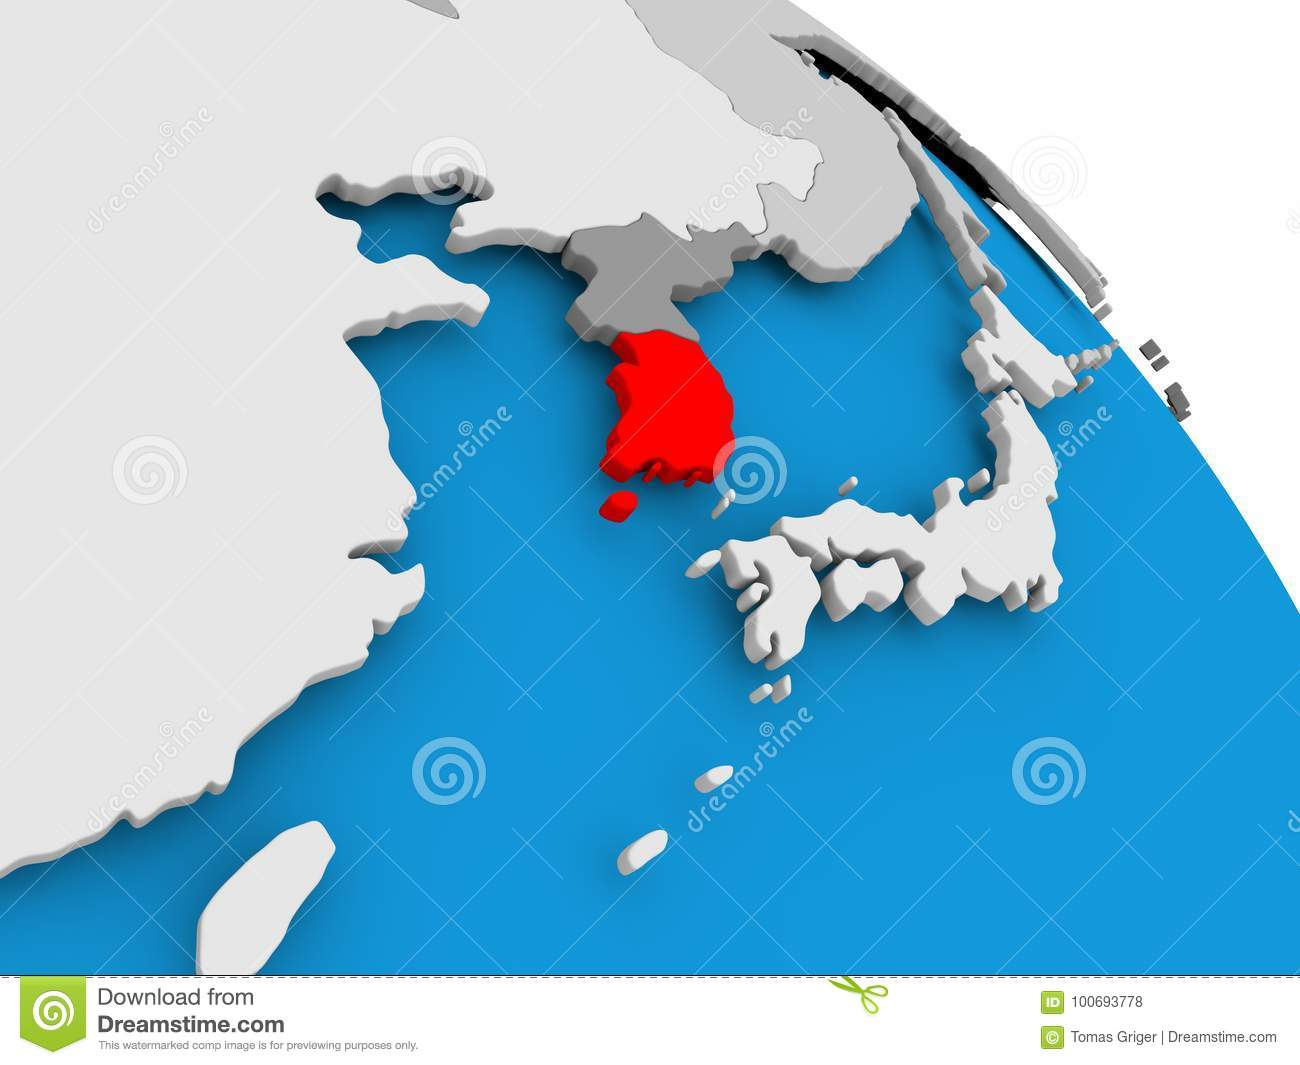 South korea in red on map stock illustration illustration of world illustration of south korea highlighted in red on globe 3d illustration gumiabroncs Choice Image